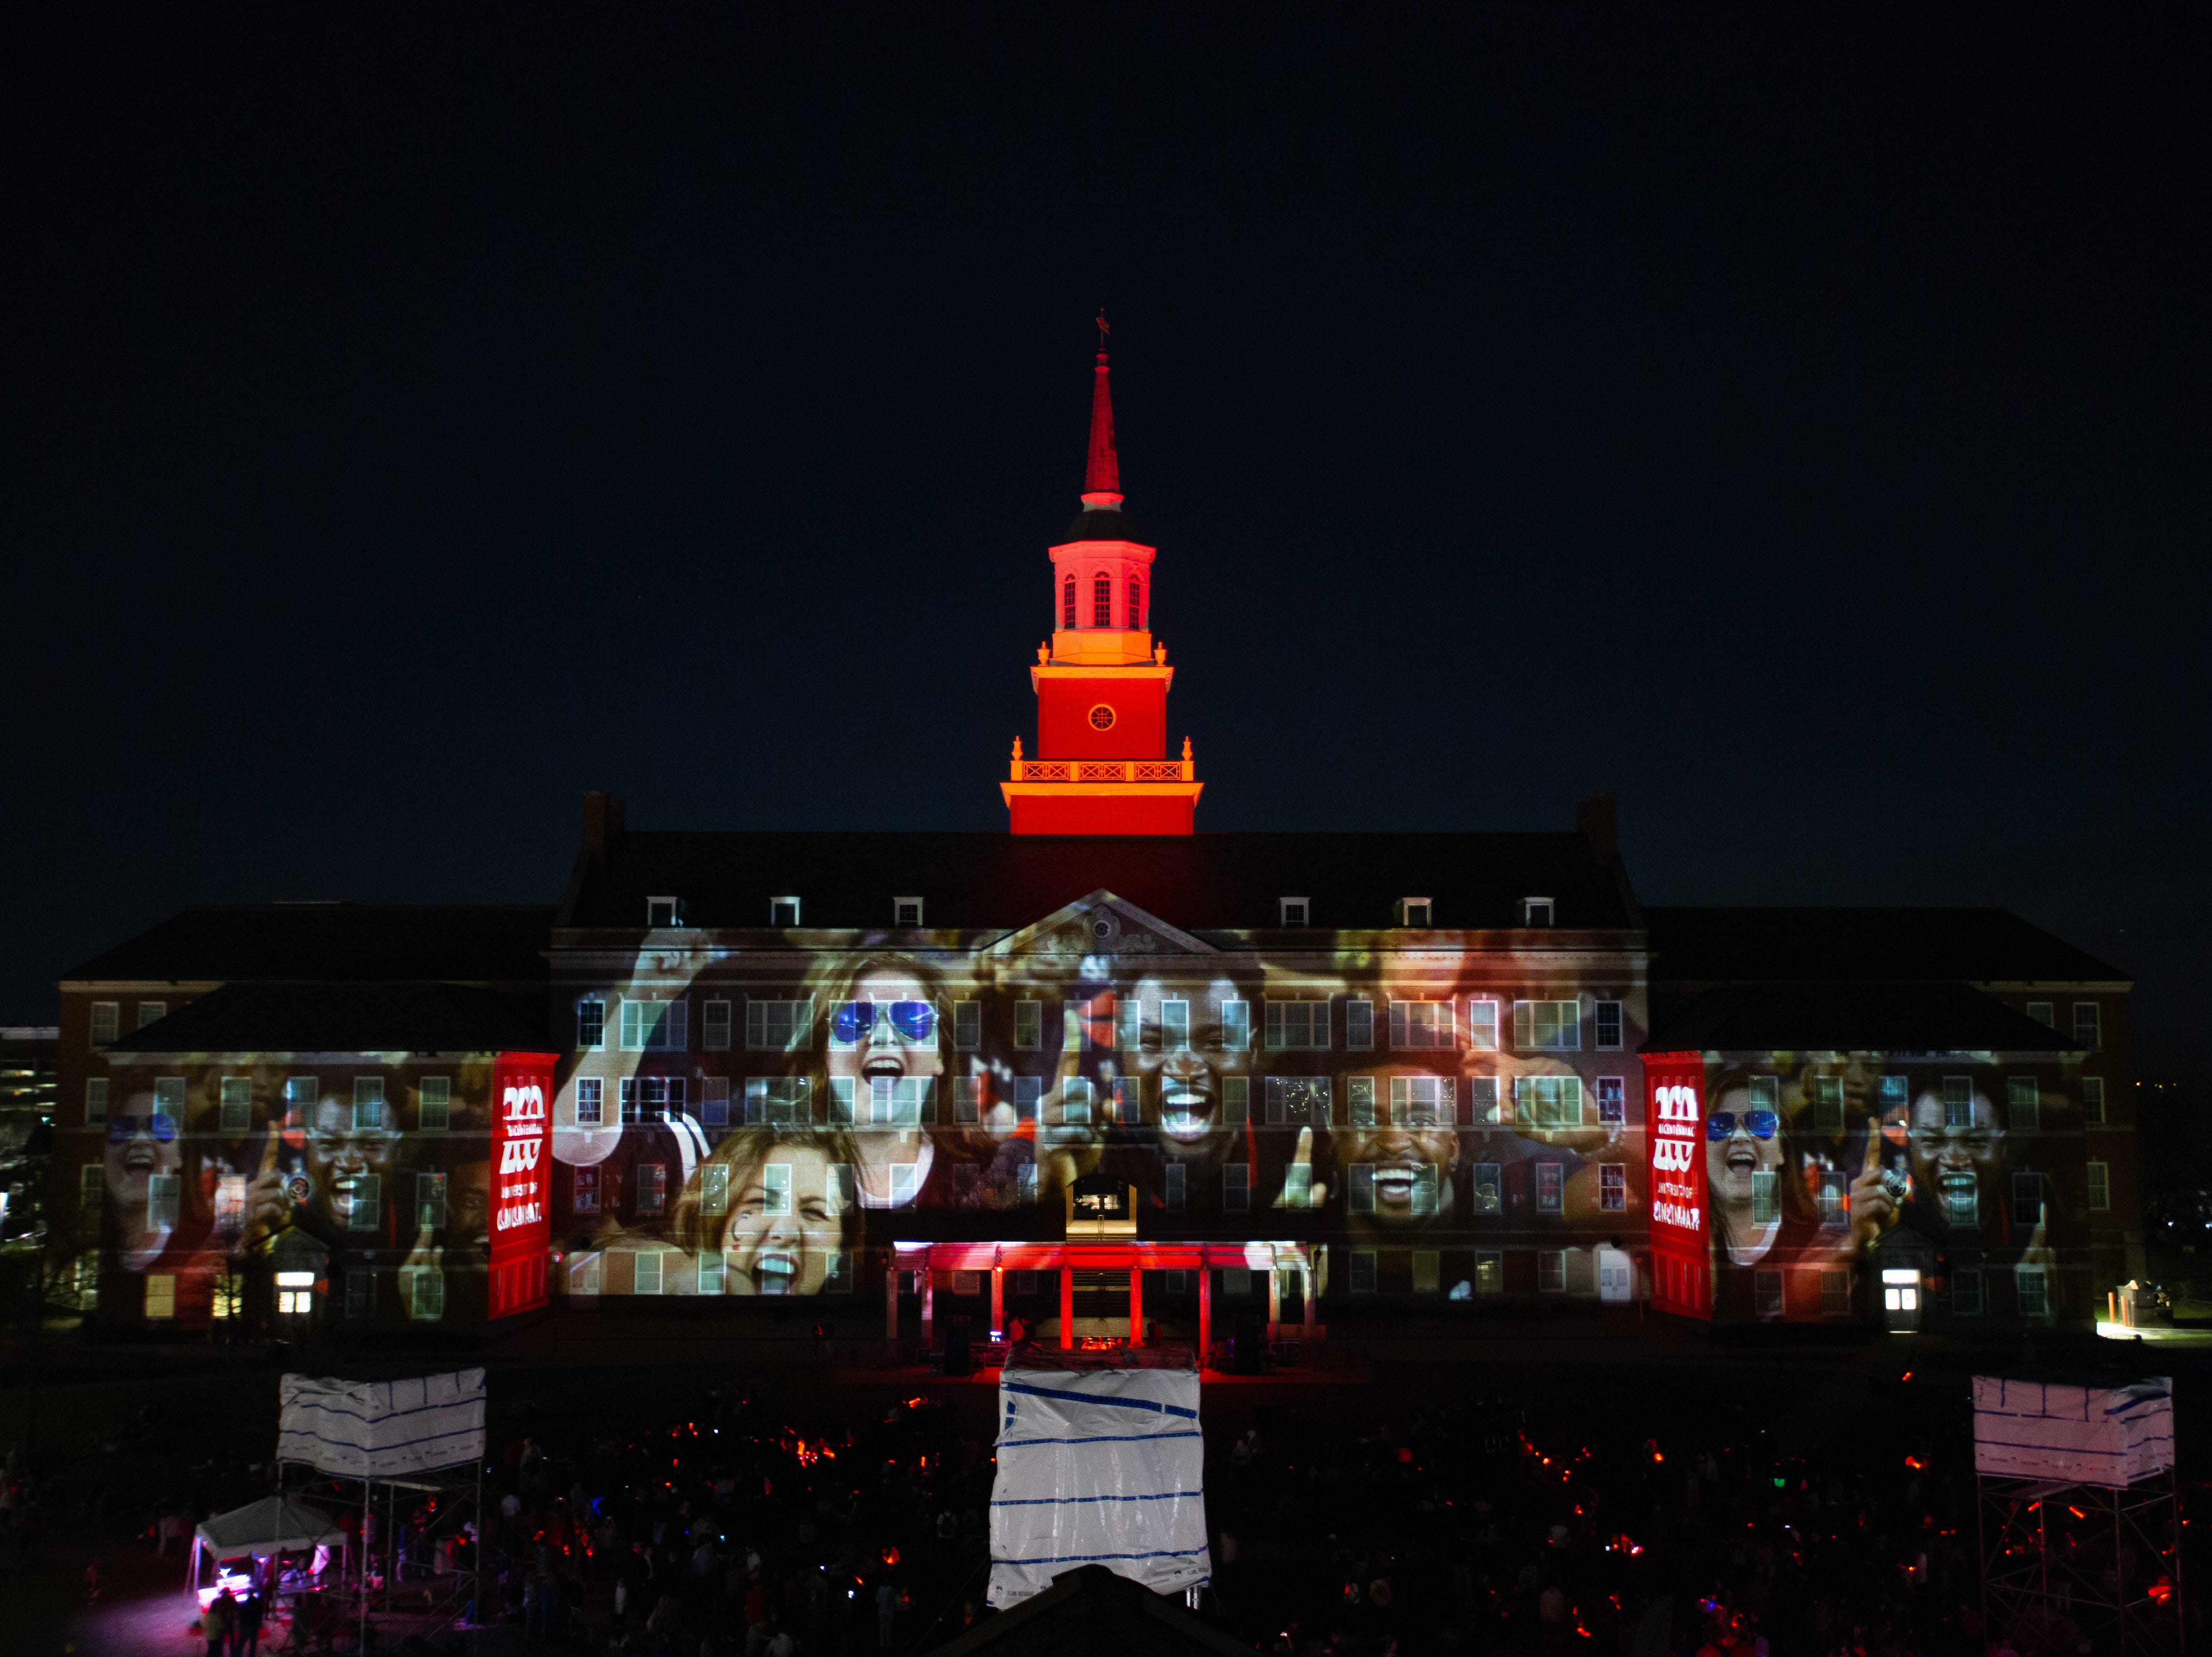 University of Cincinnati screaming Football Fans images adorned McMicken Hall during Community Day to celebrate UC's Bicentennial Saturday April 6, 2019 at McMicken Commons on the campus of the University of Cincinnati. Photo by Andrew Higley/University of Cincinnati